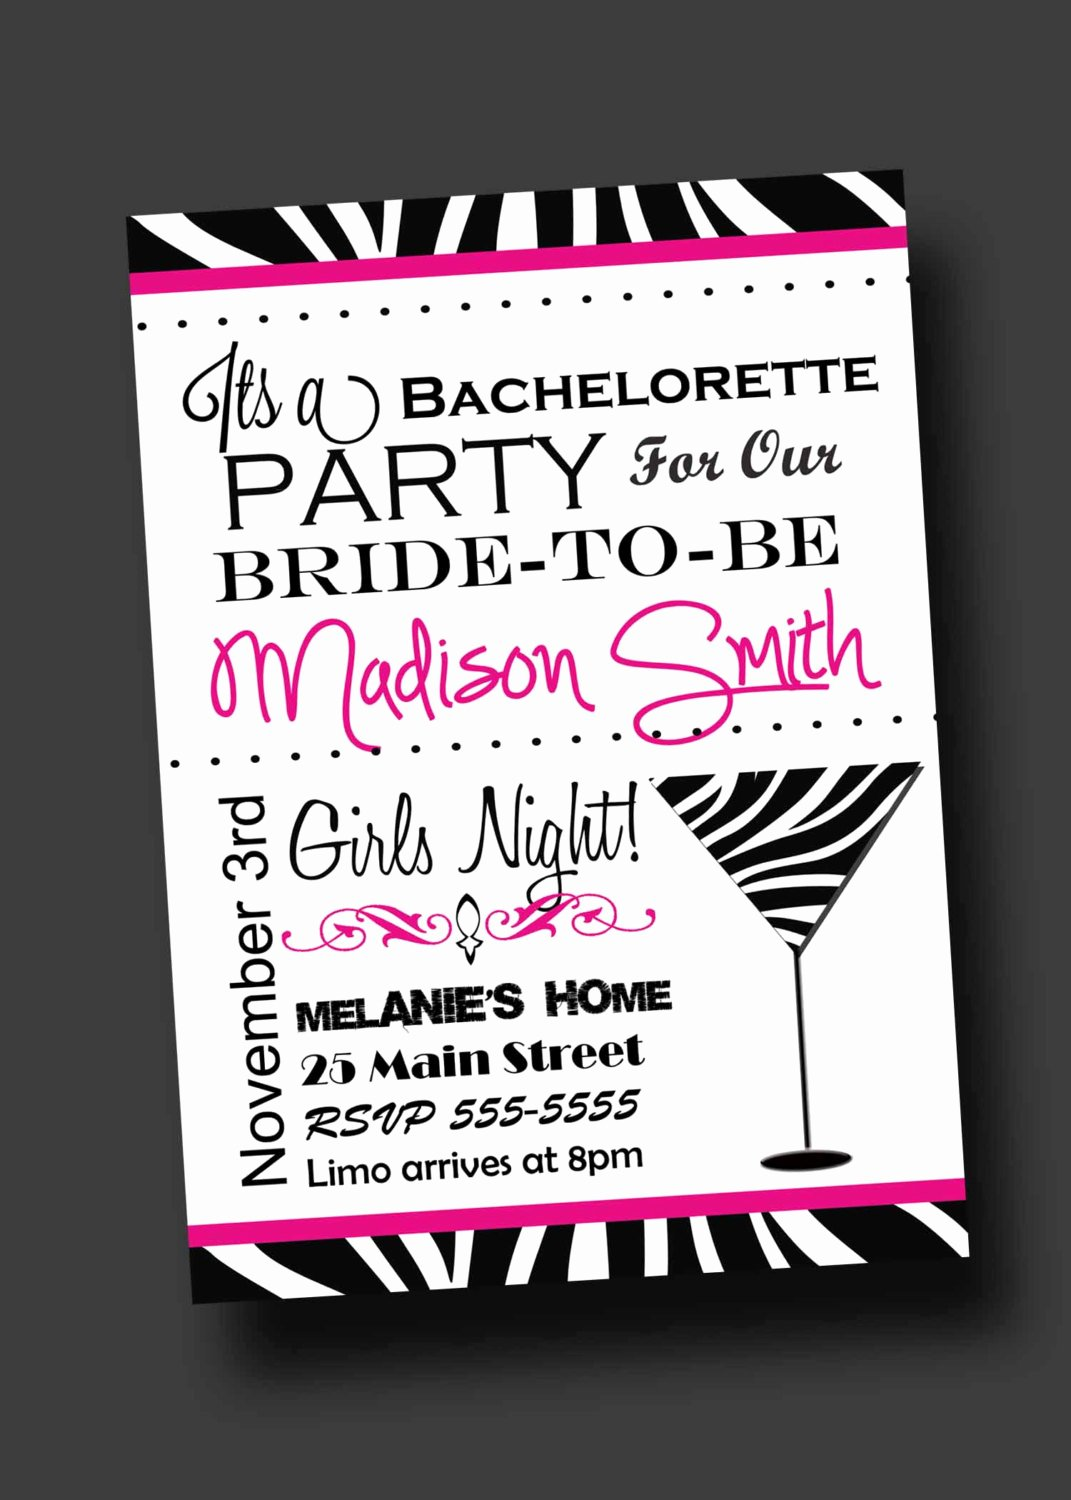 Bachelorette Party Invites Templates Luxury Bachelorette Party Invitation Zebra Print Printable Digital